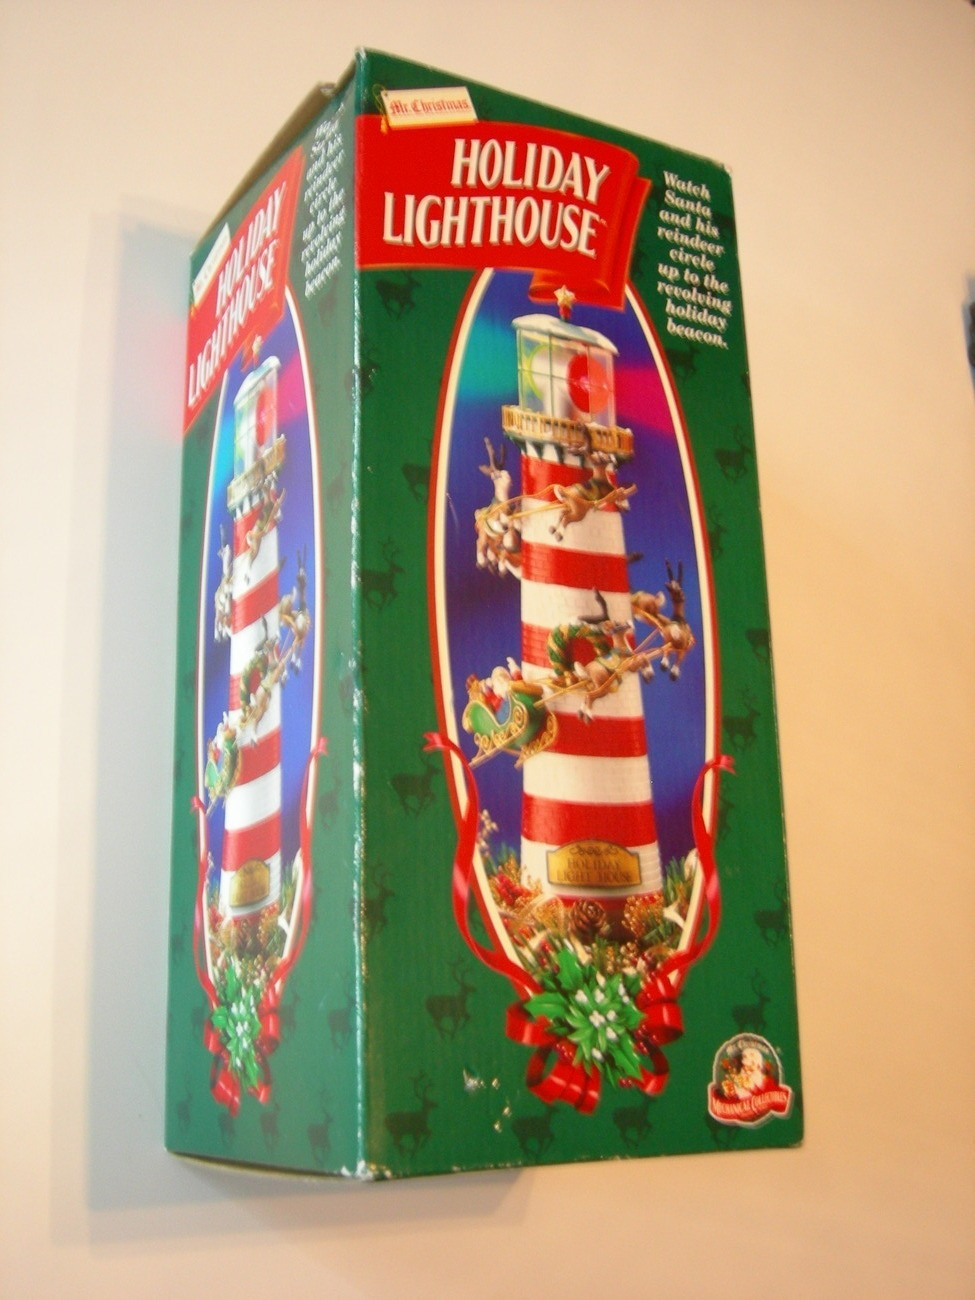 Mr Christmas Holiday Lighthouse table or Tree Topper NIB  : DSCN7092 from www.bonanza.com size 975 x 1300 jpeg 294kB